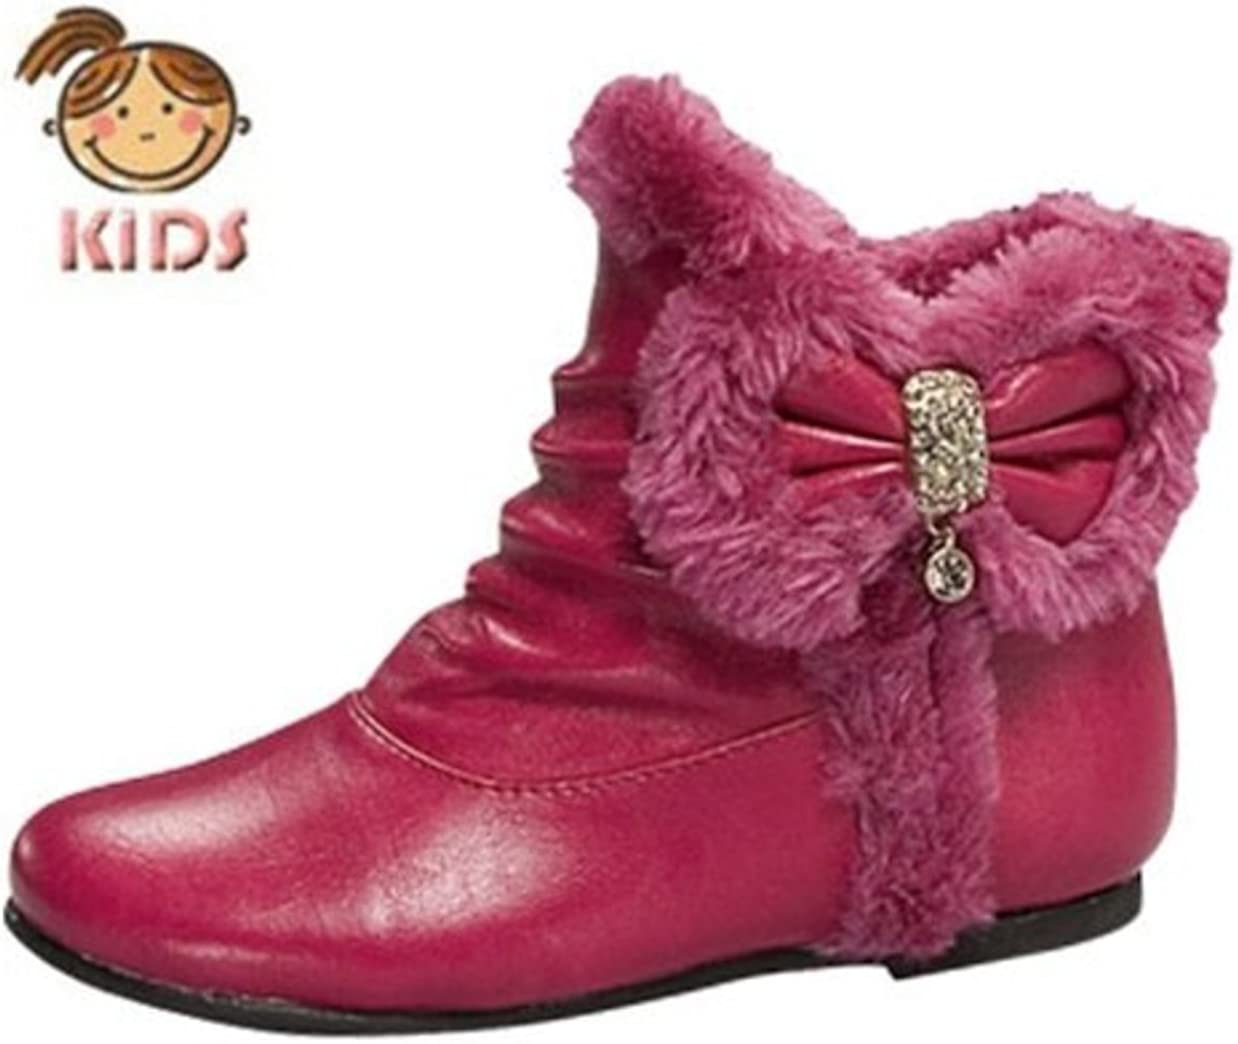 Tan or White Lucky Top Baby Ankle Bow Tie Faux Fur Lined Boots Post5f Fuchsia Red